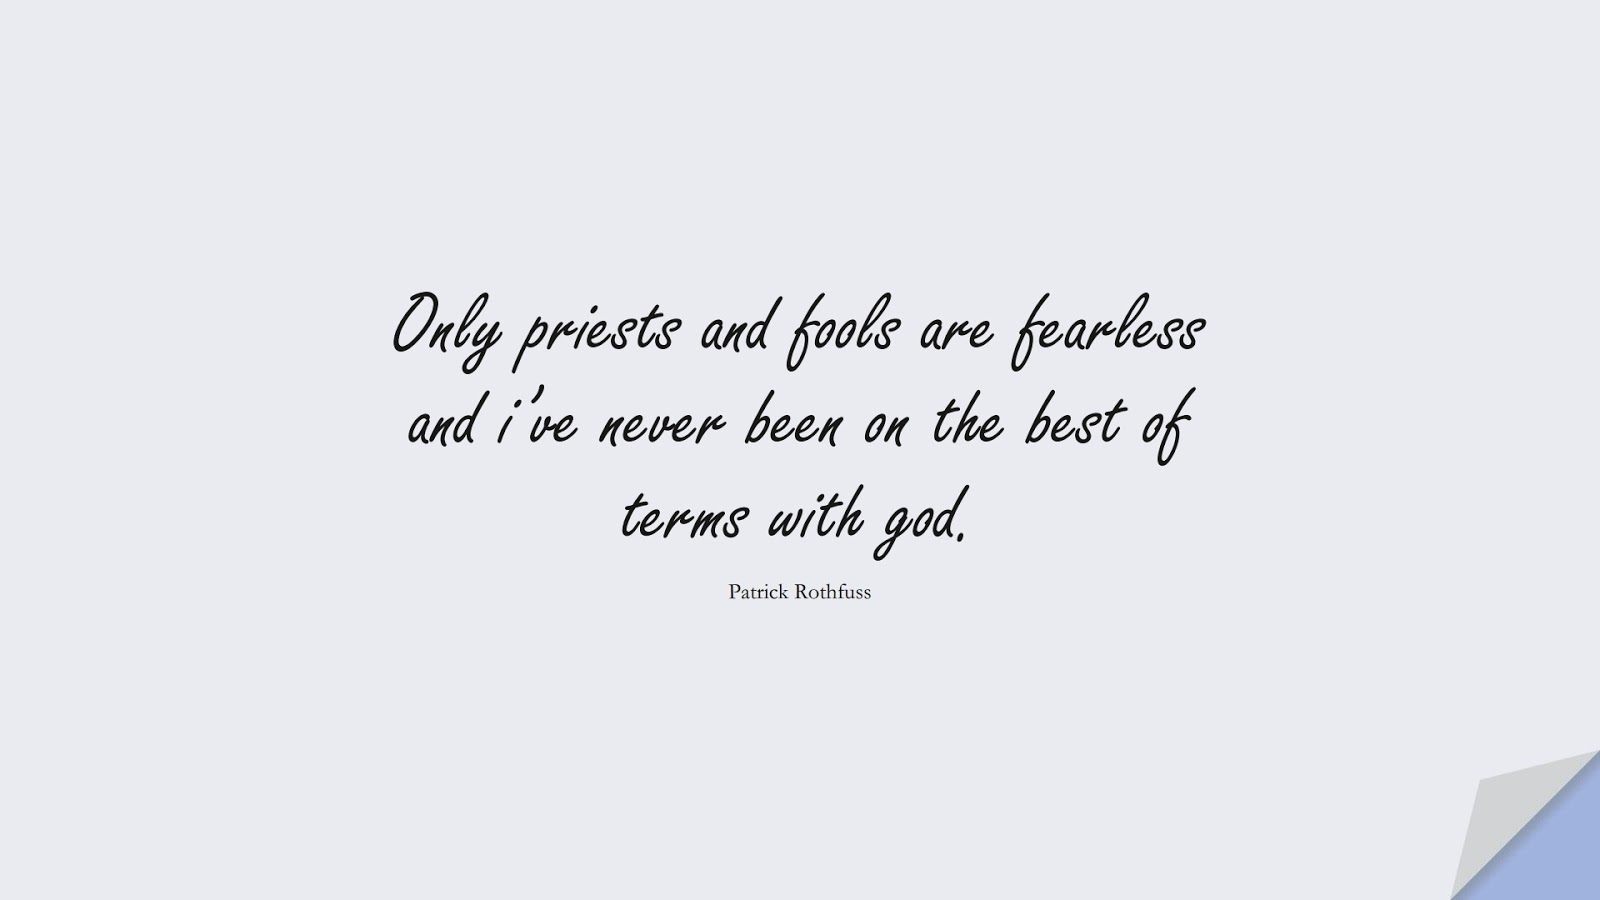 Only priests and fools are fearless and i've never been on the best of terms with god. (Patrick Rothfuss);  #FearQuotes